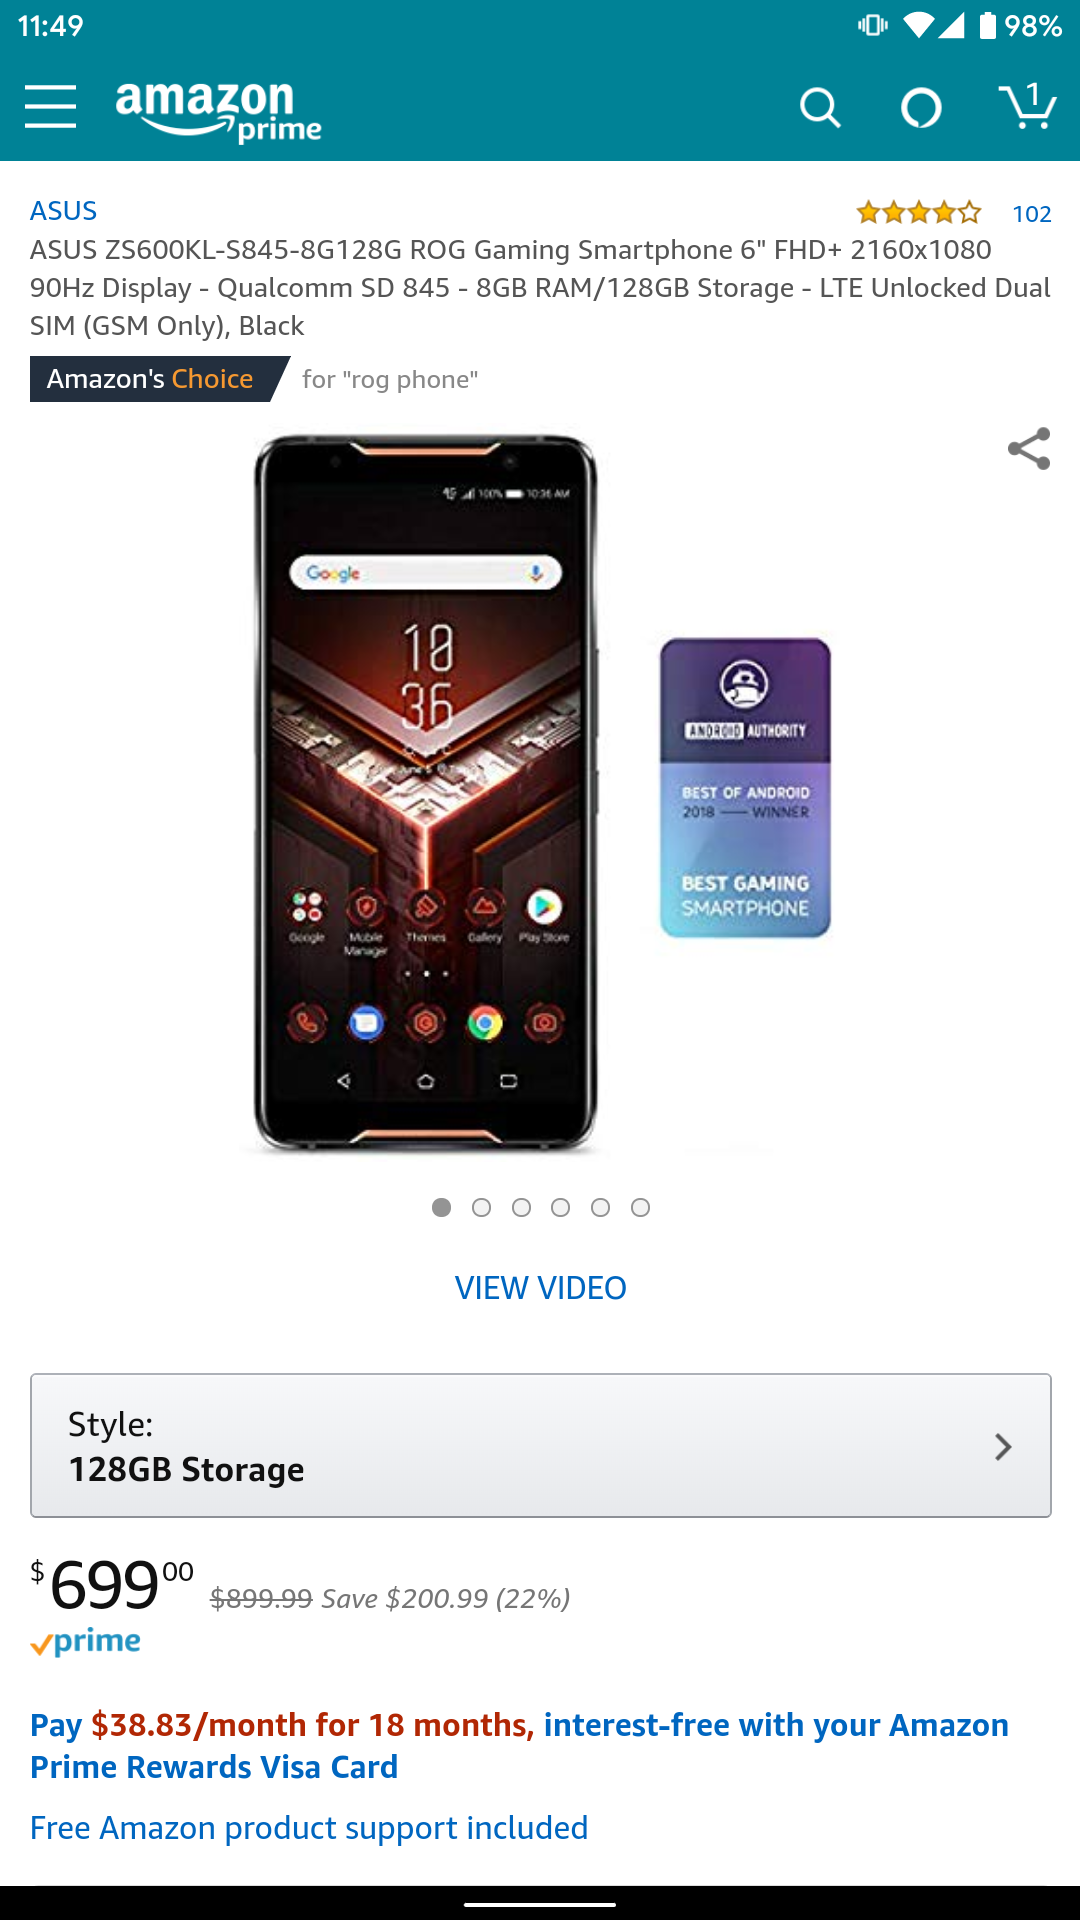 512GB ASUS ROG Phone on sale for $869 ($231 off) at Amazon